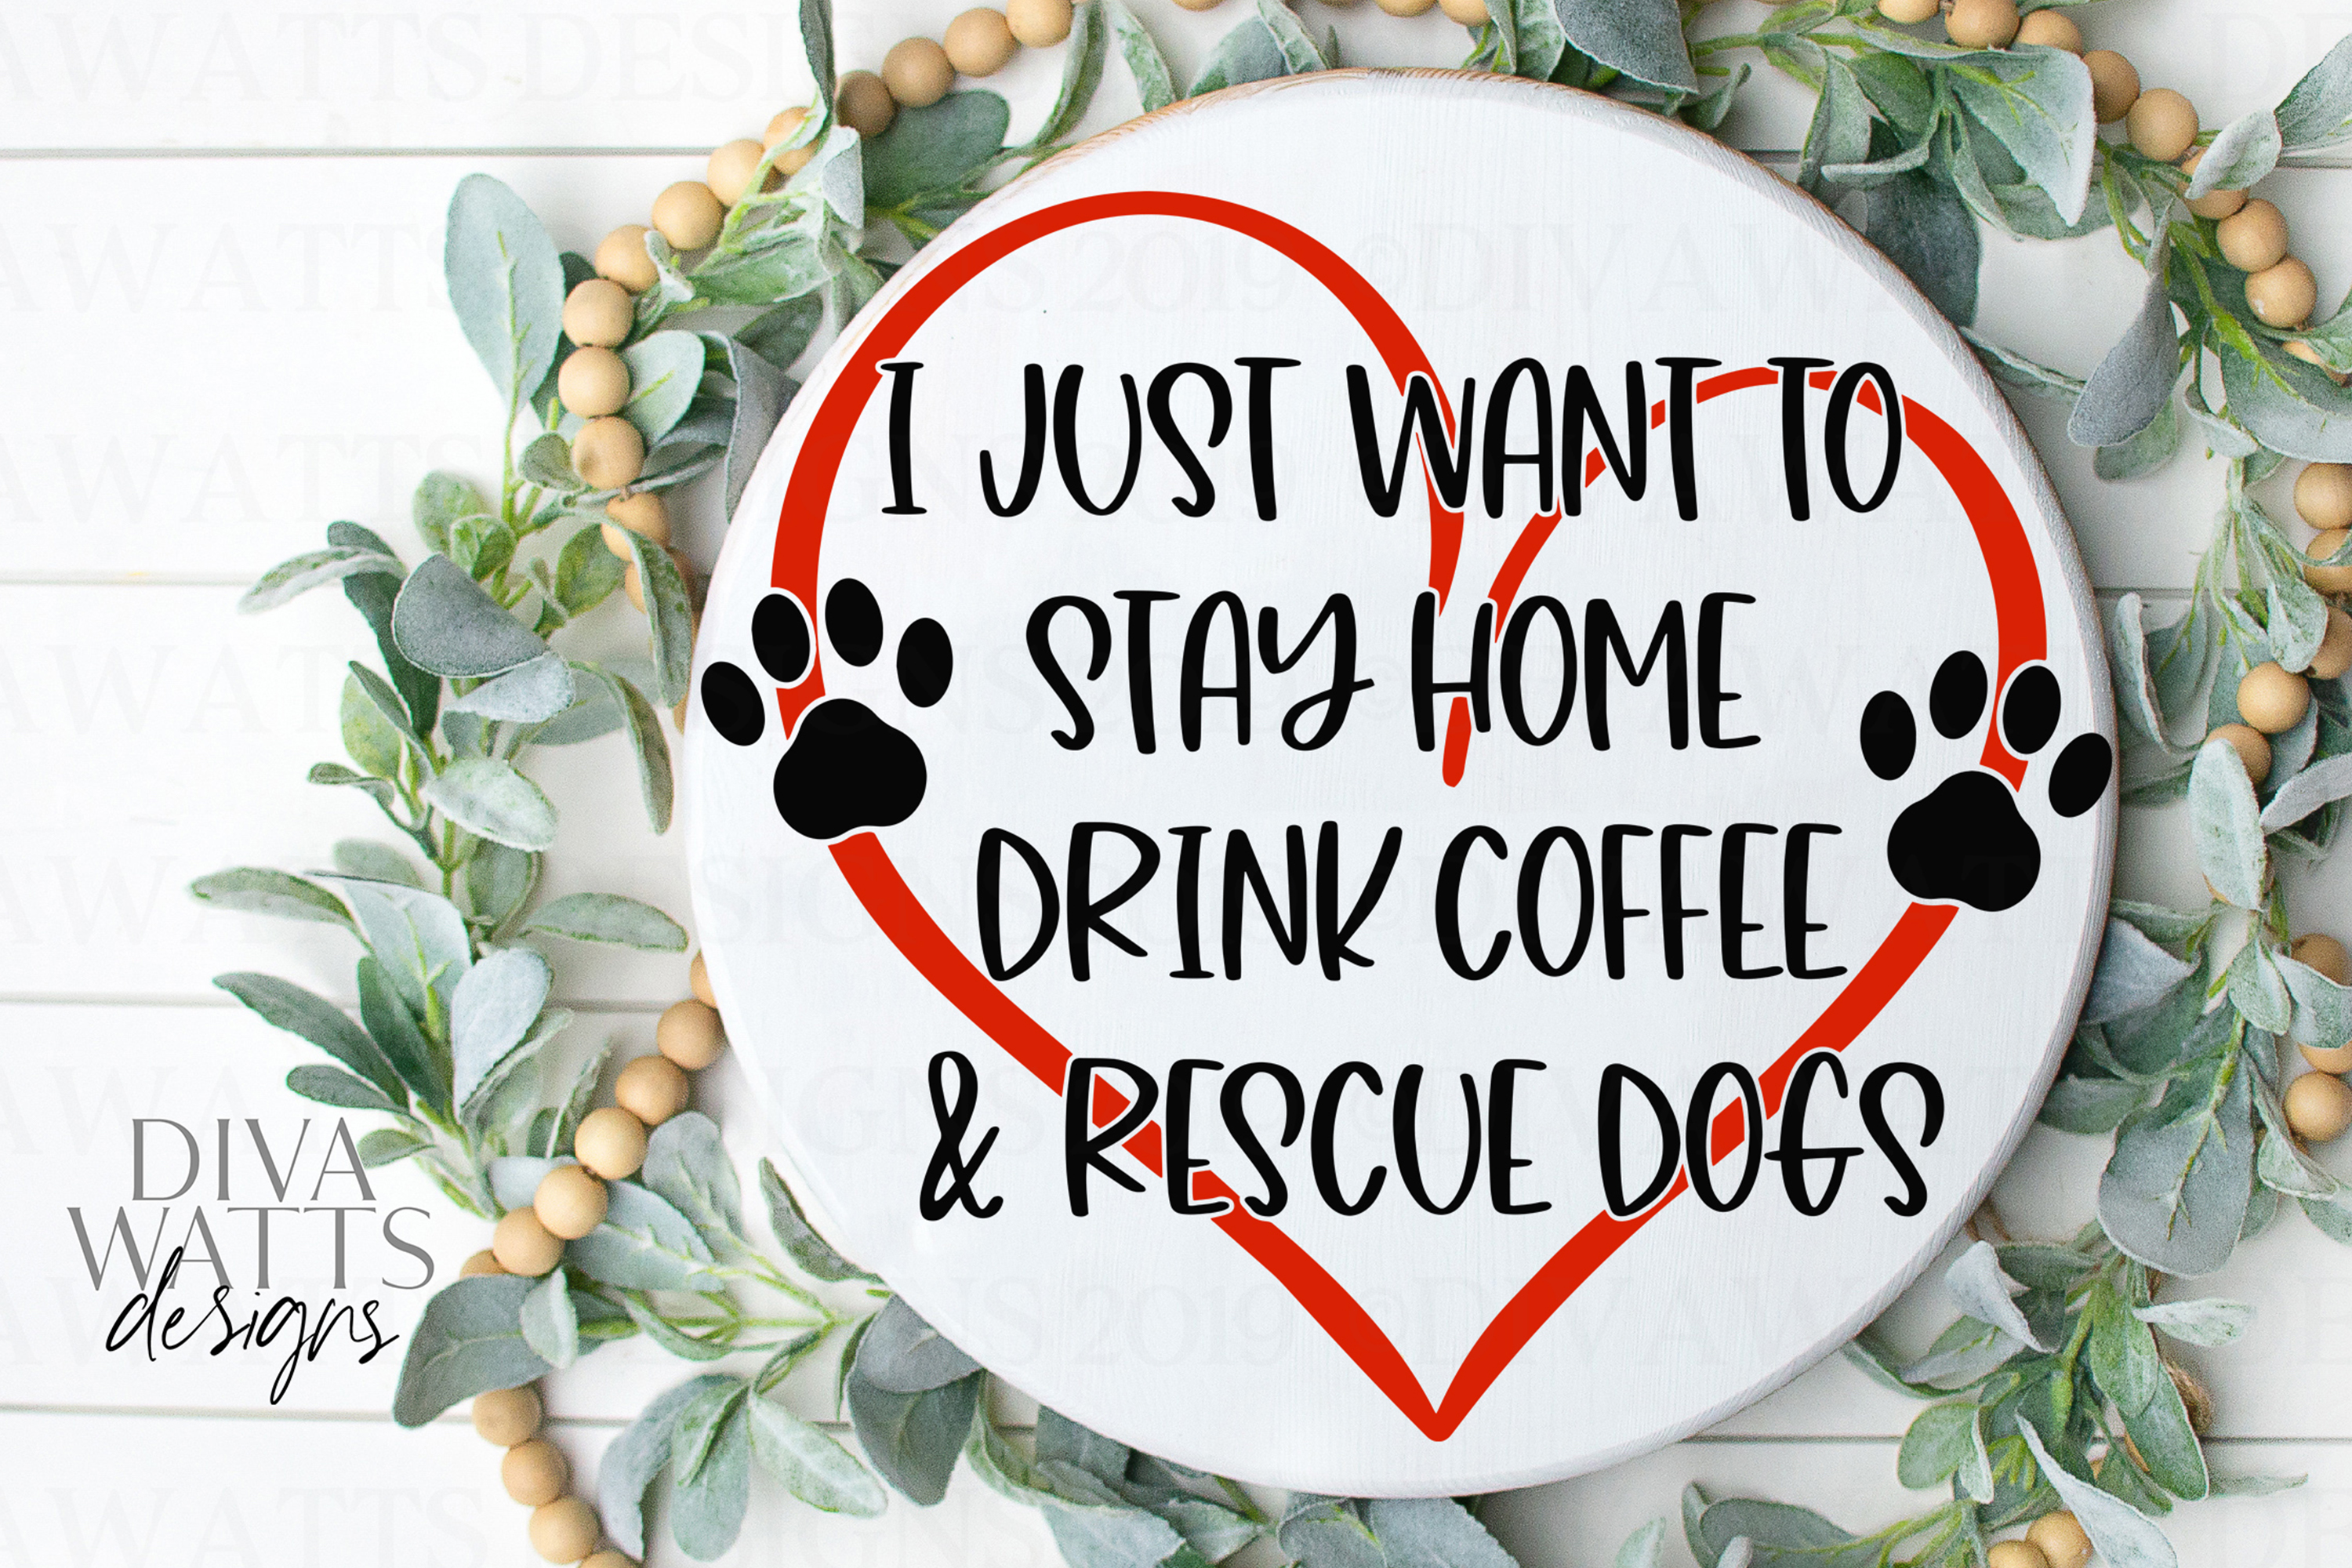 I Just Want To Stay Home Drink Coffee & Rescue Dogs SVG PNG example image 3